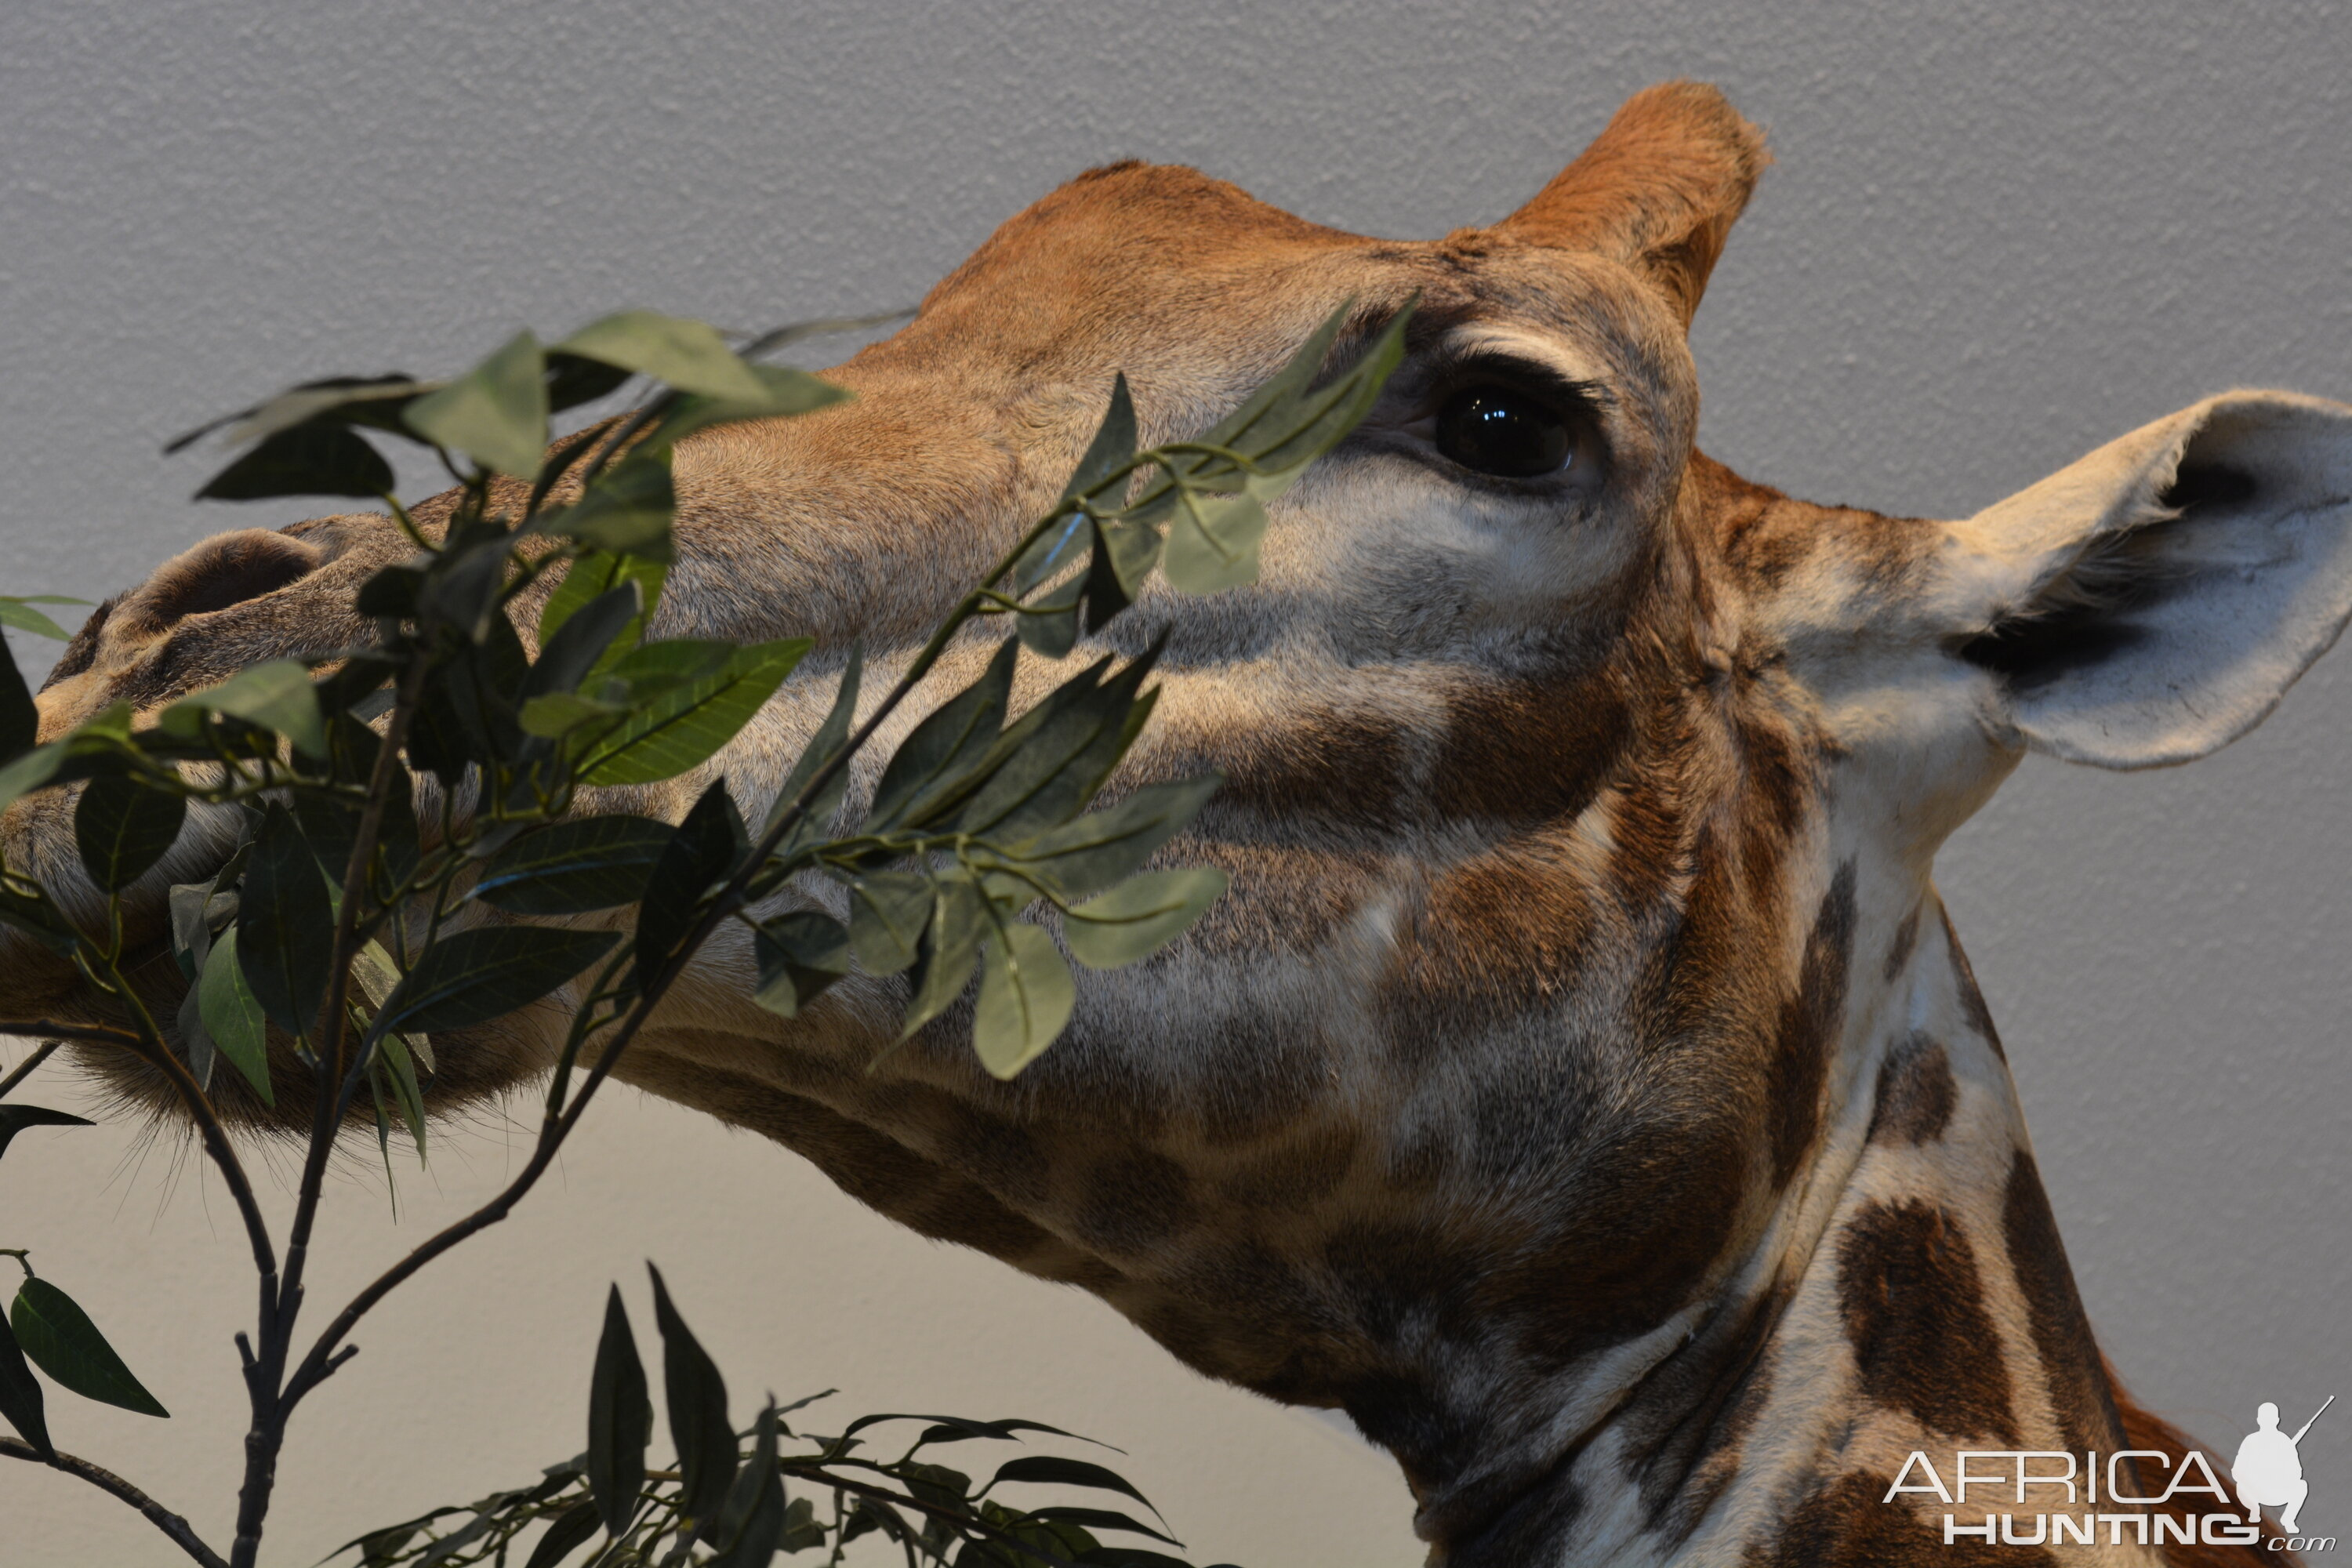 Giraffe Pedestal Mount Taxidermy Up Close